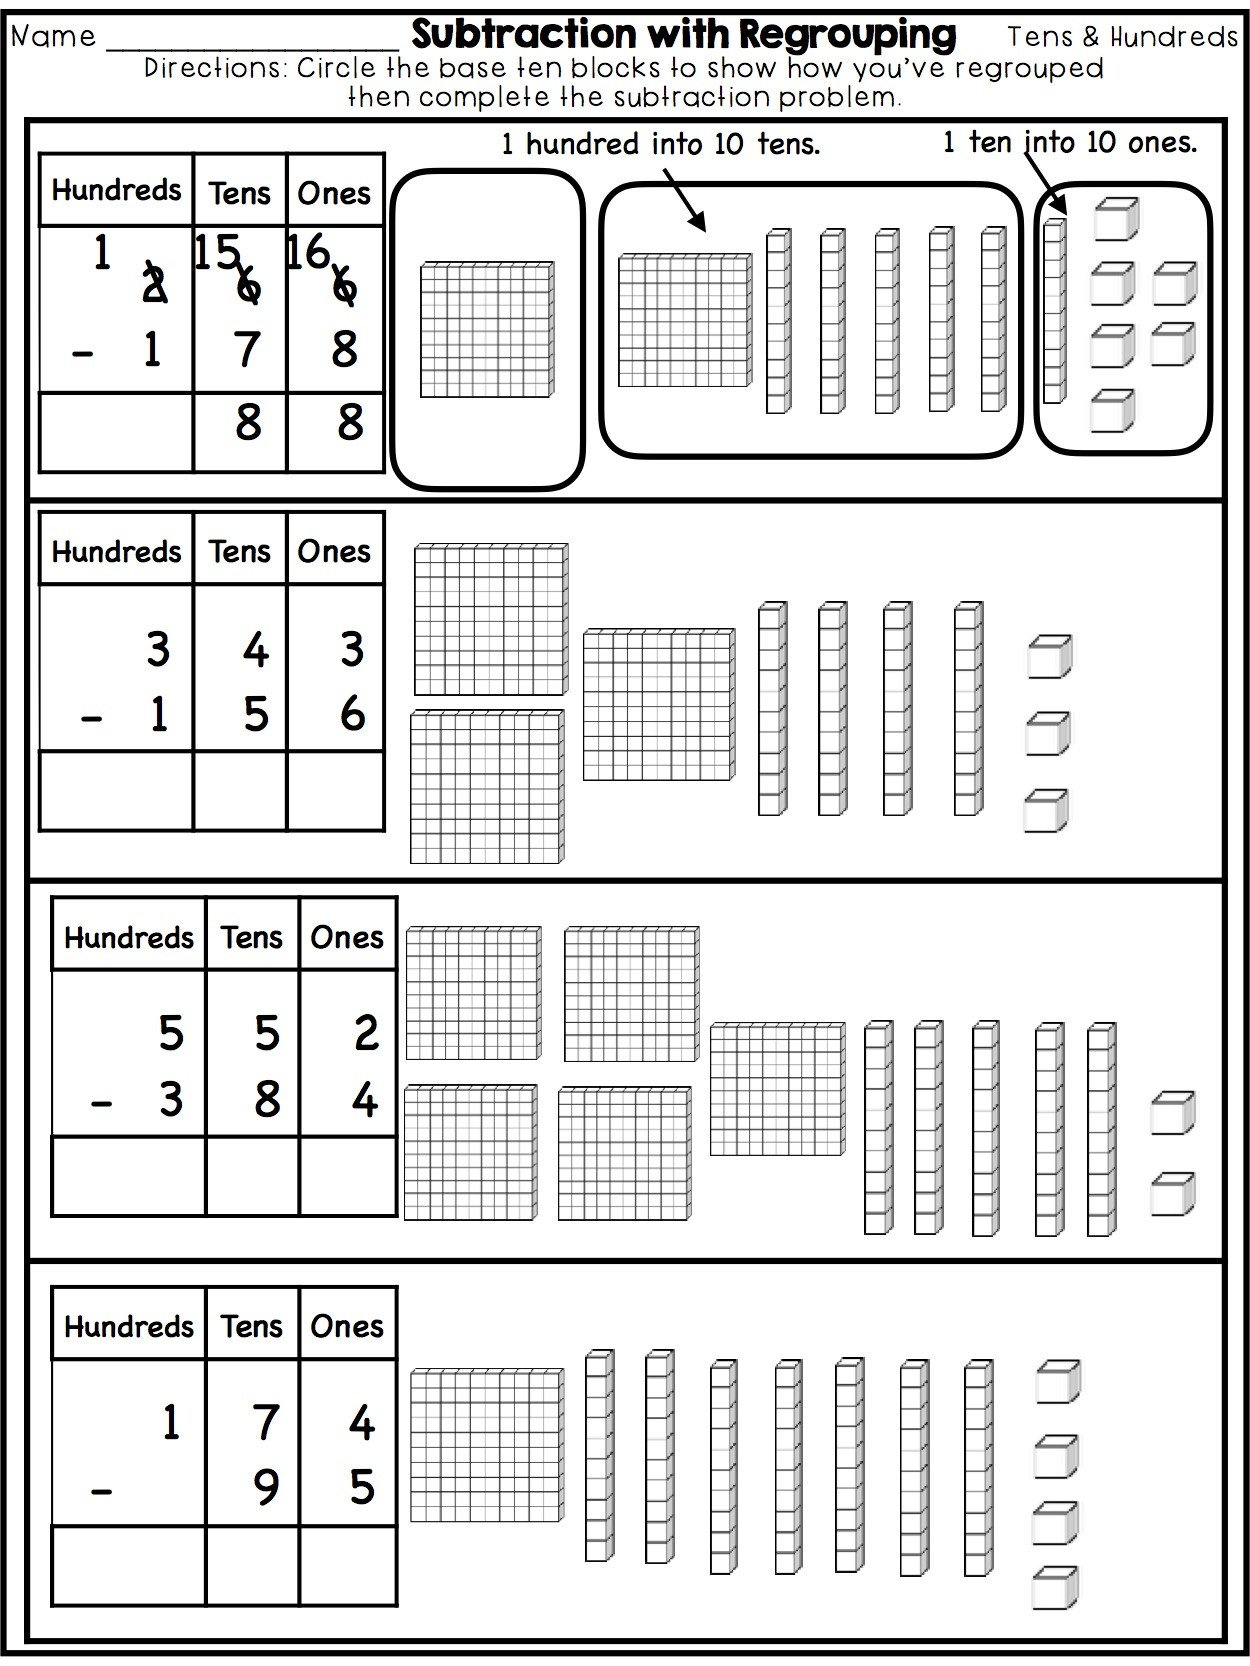 Base Ten Model Worksheets Subtraction with Regrouping Three Digit Numbers From Katelyn